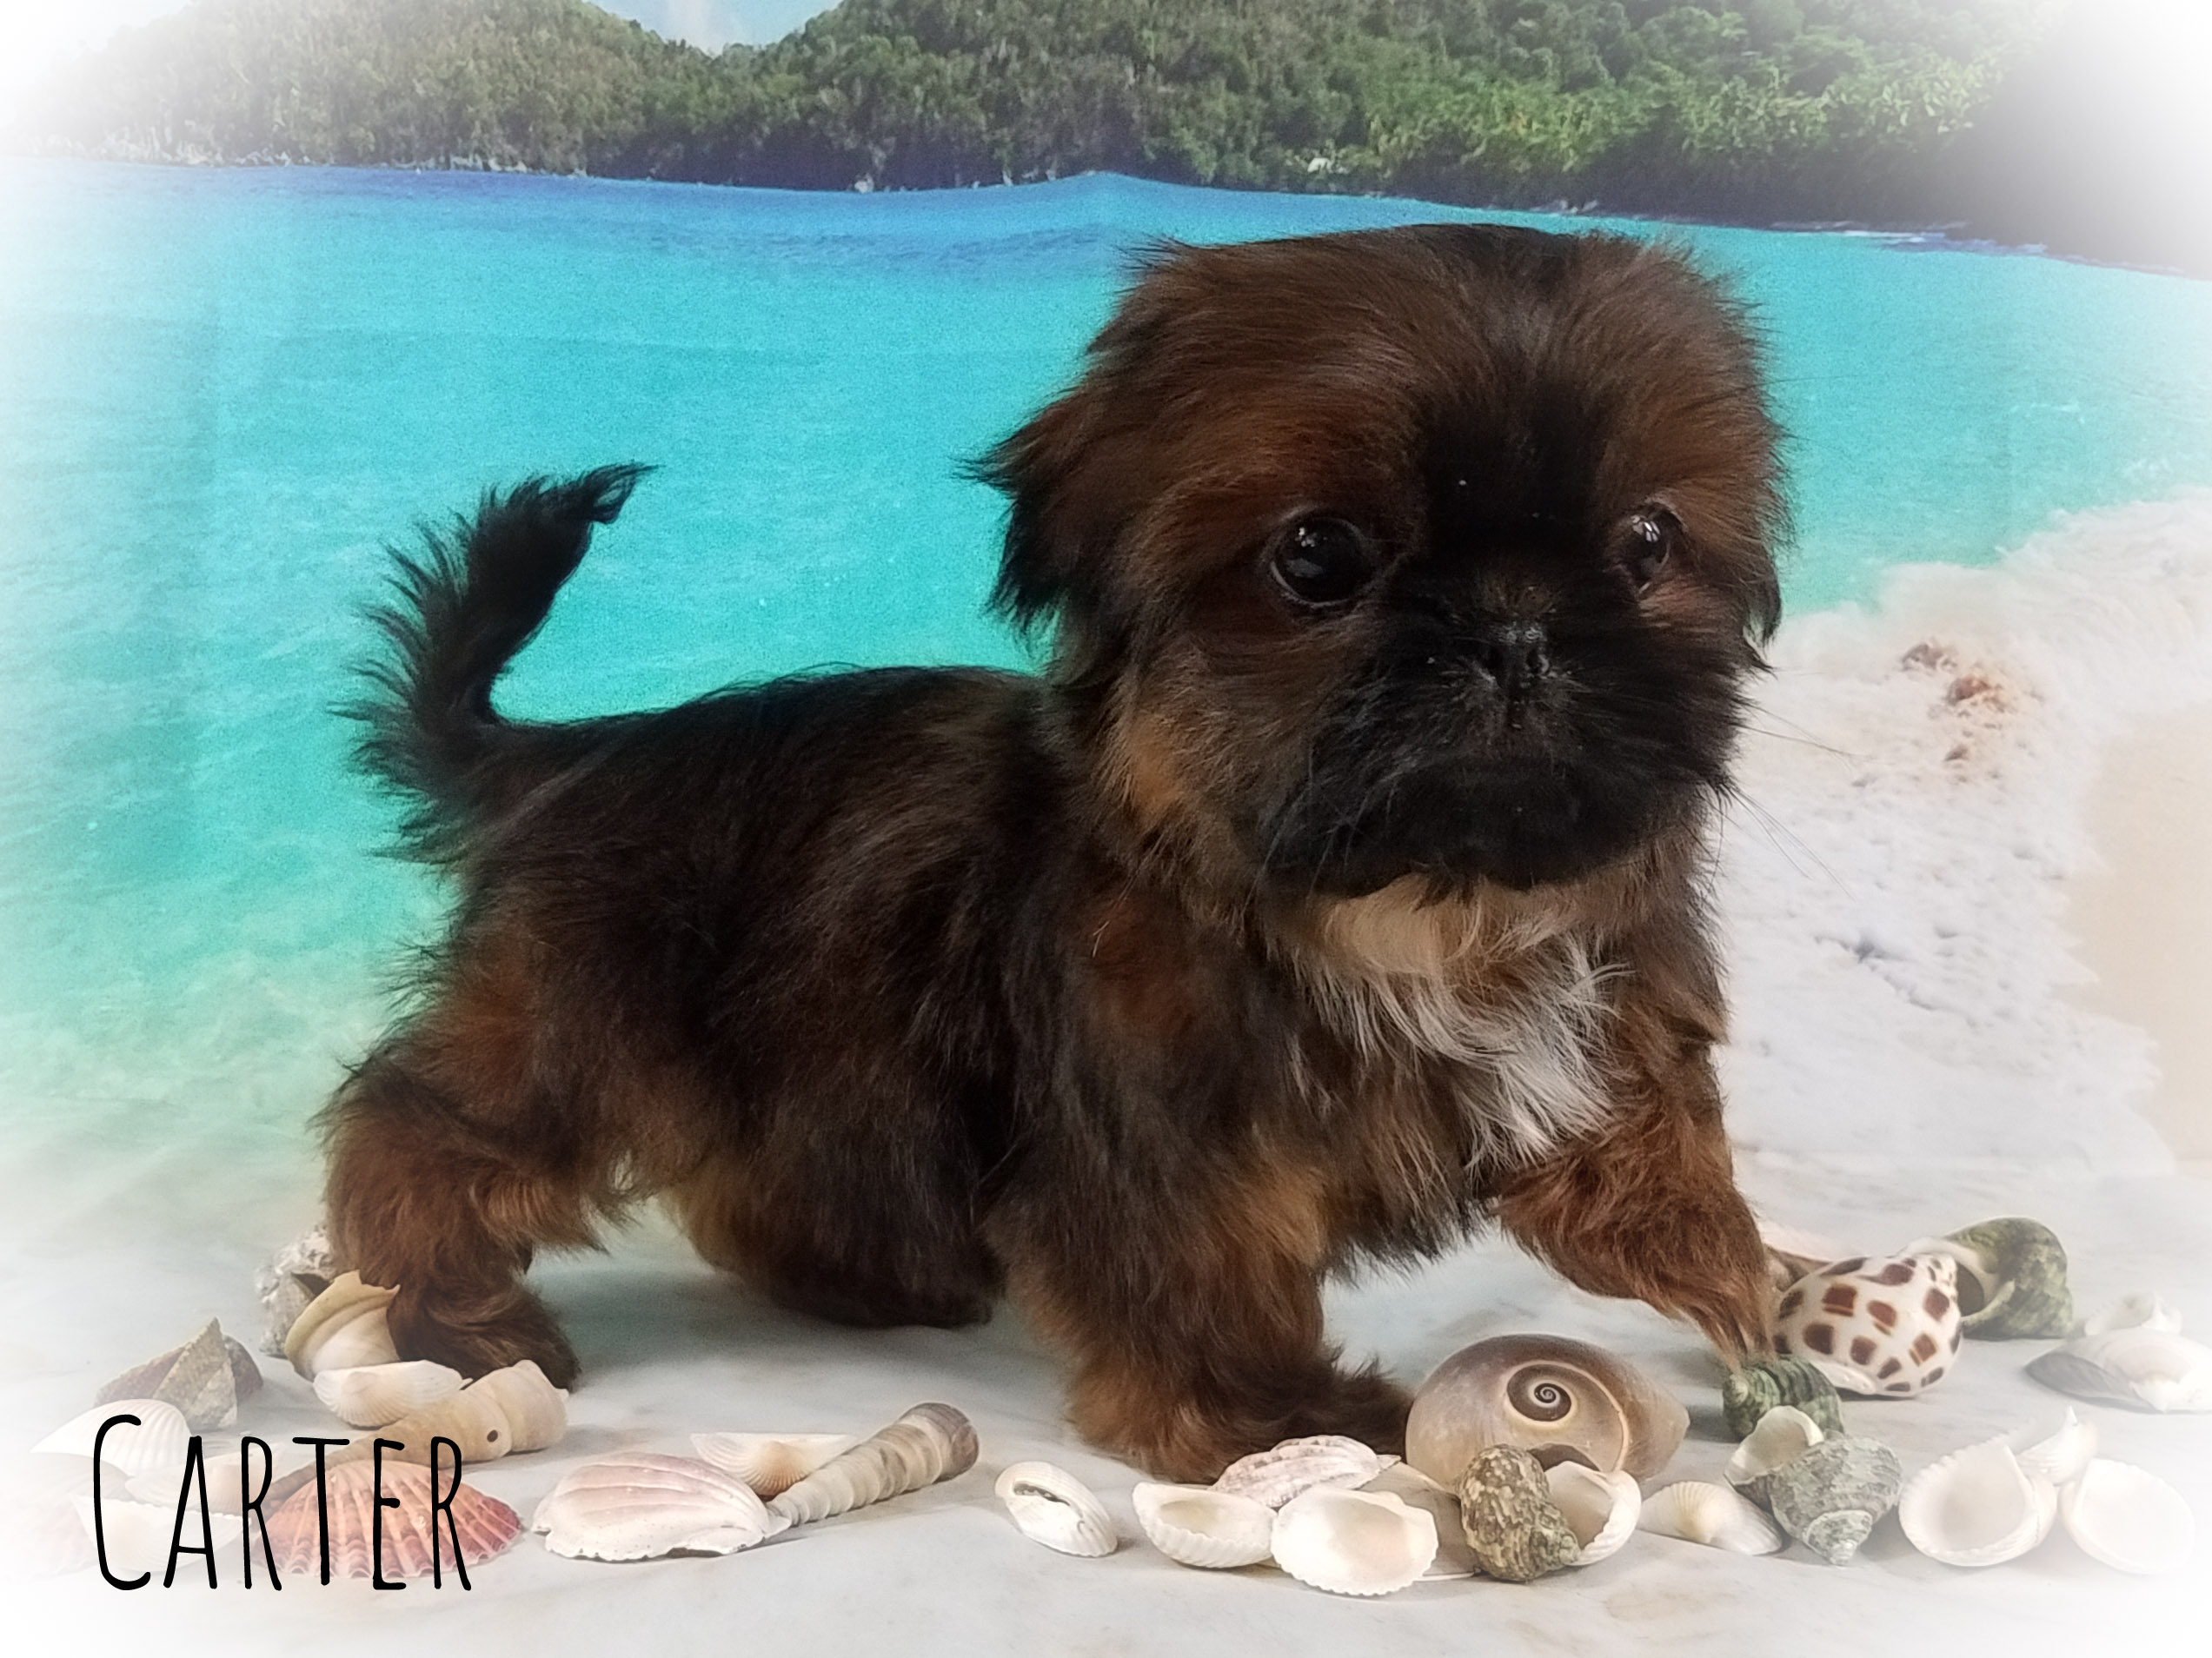 Imperial Shih Tzu Male Puppy - Carter